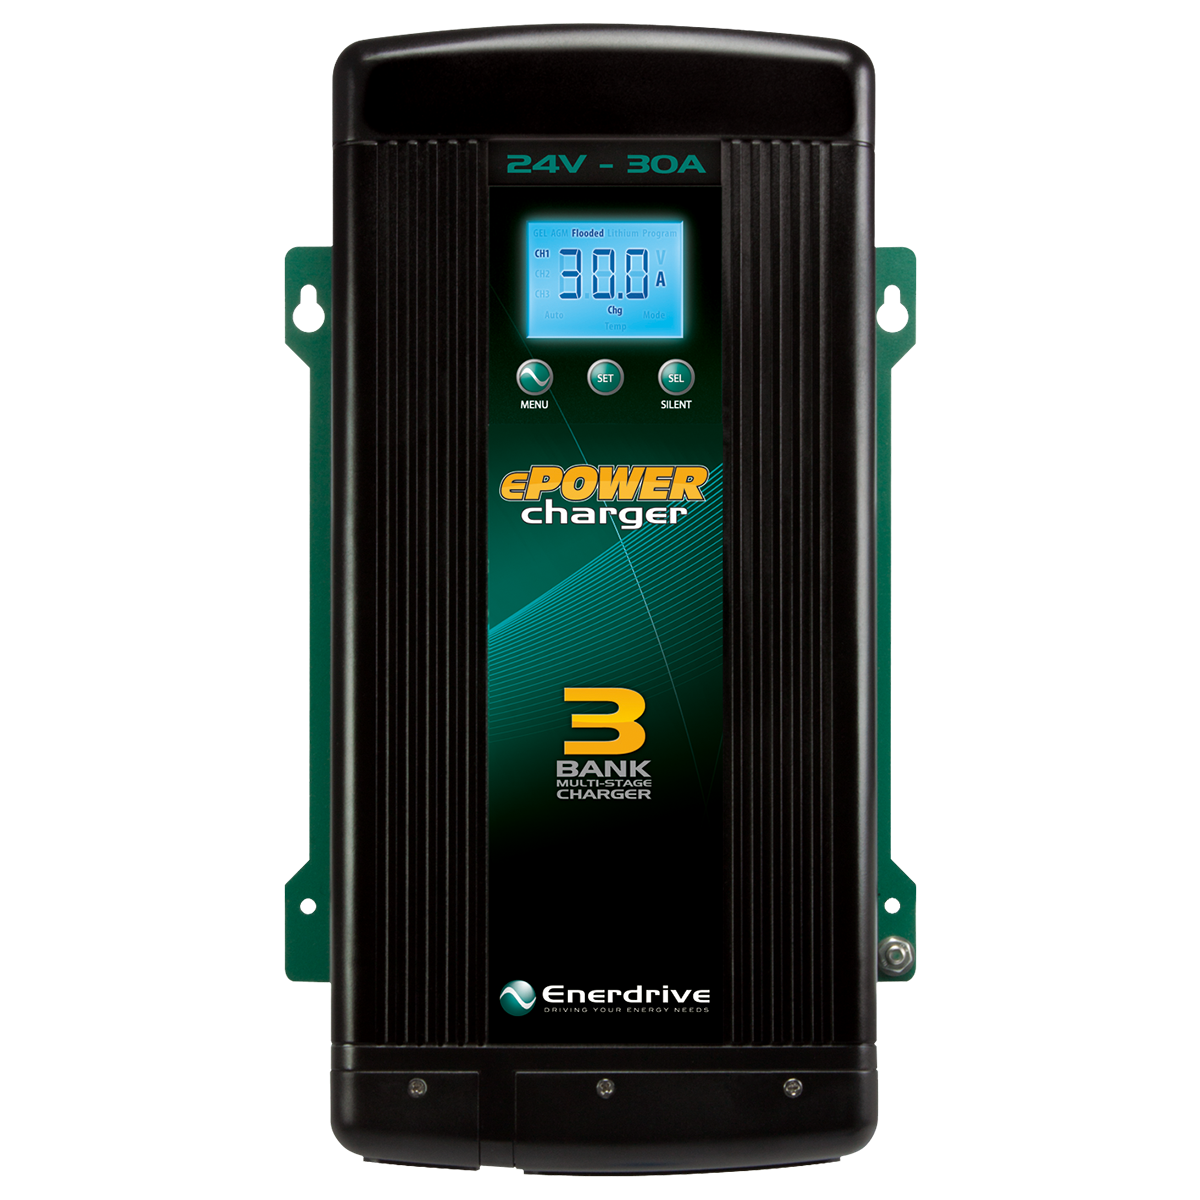 ePOWER 24V 30A Battery Charger